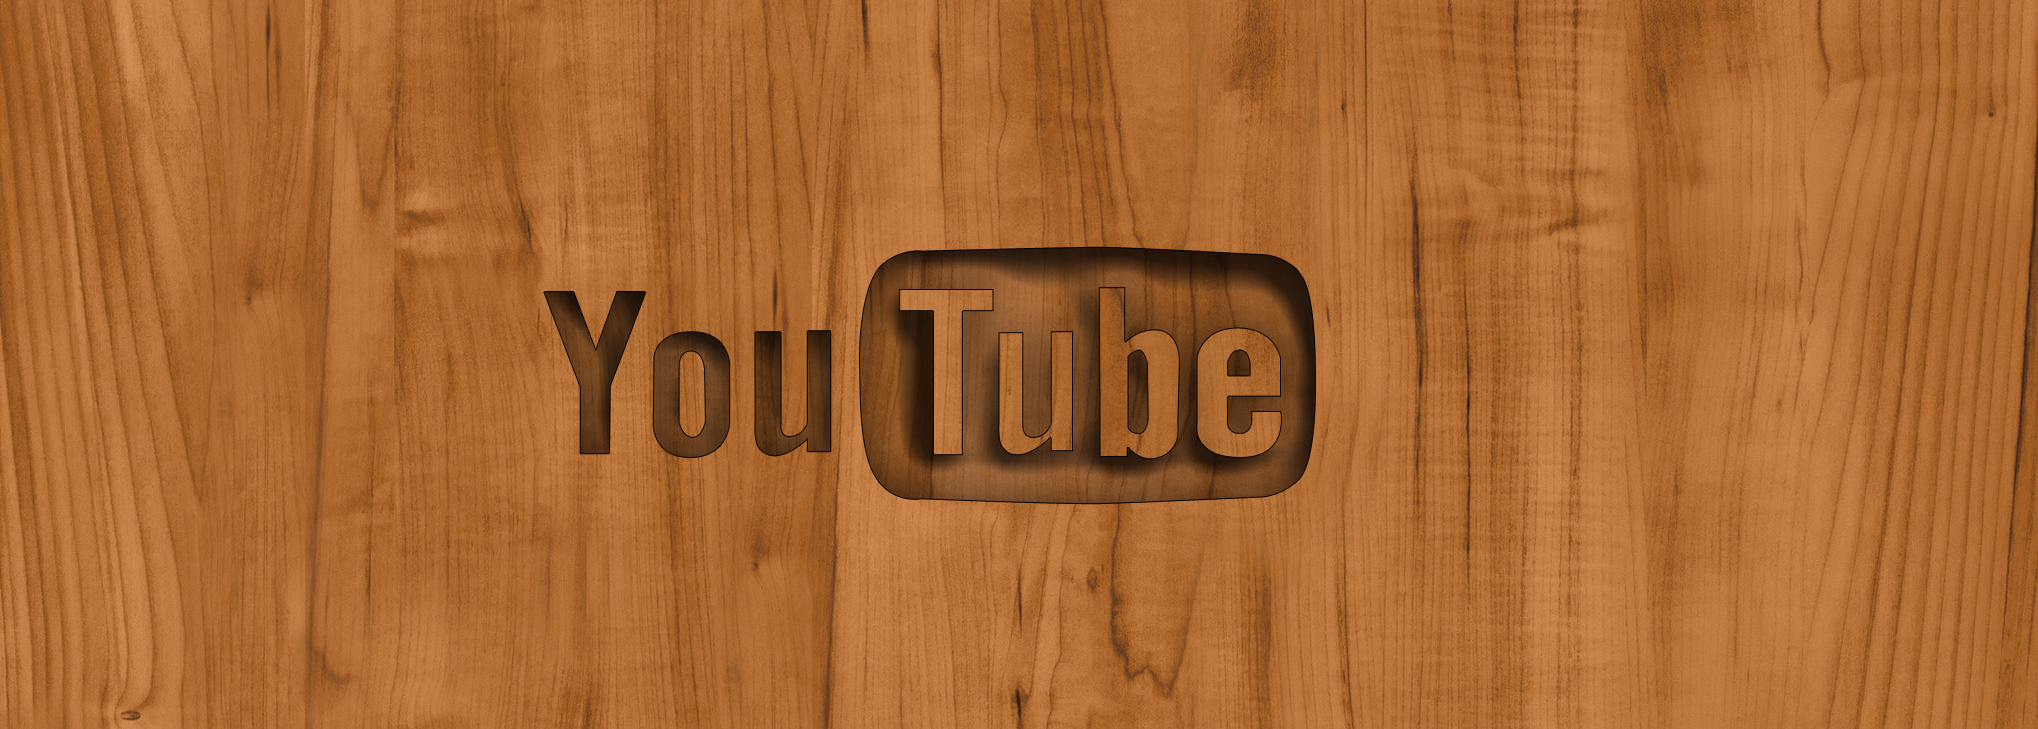 Top 7 YouTube Channels to Learn French Brainscape Blog 2038x729